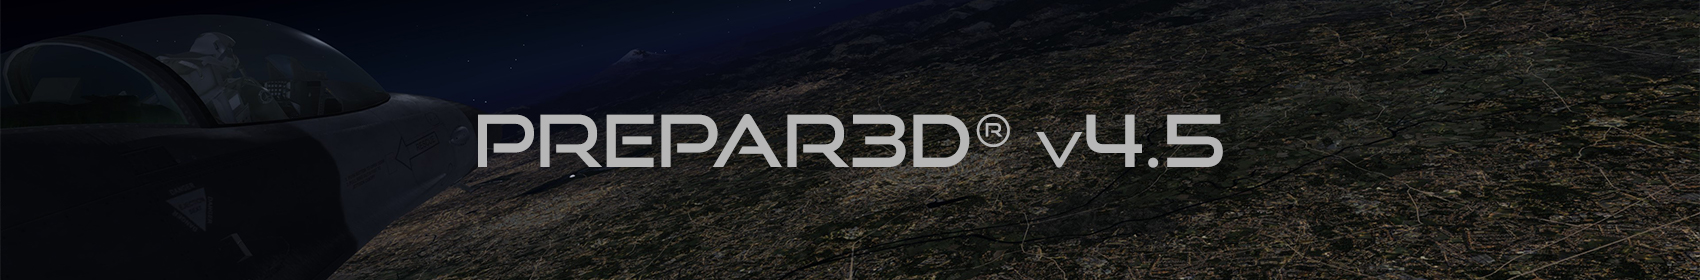 Latest News – Lockheed Martin - Prepar3D